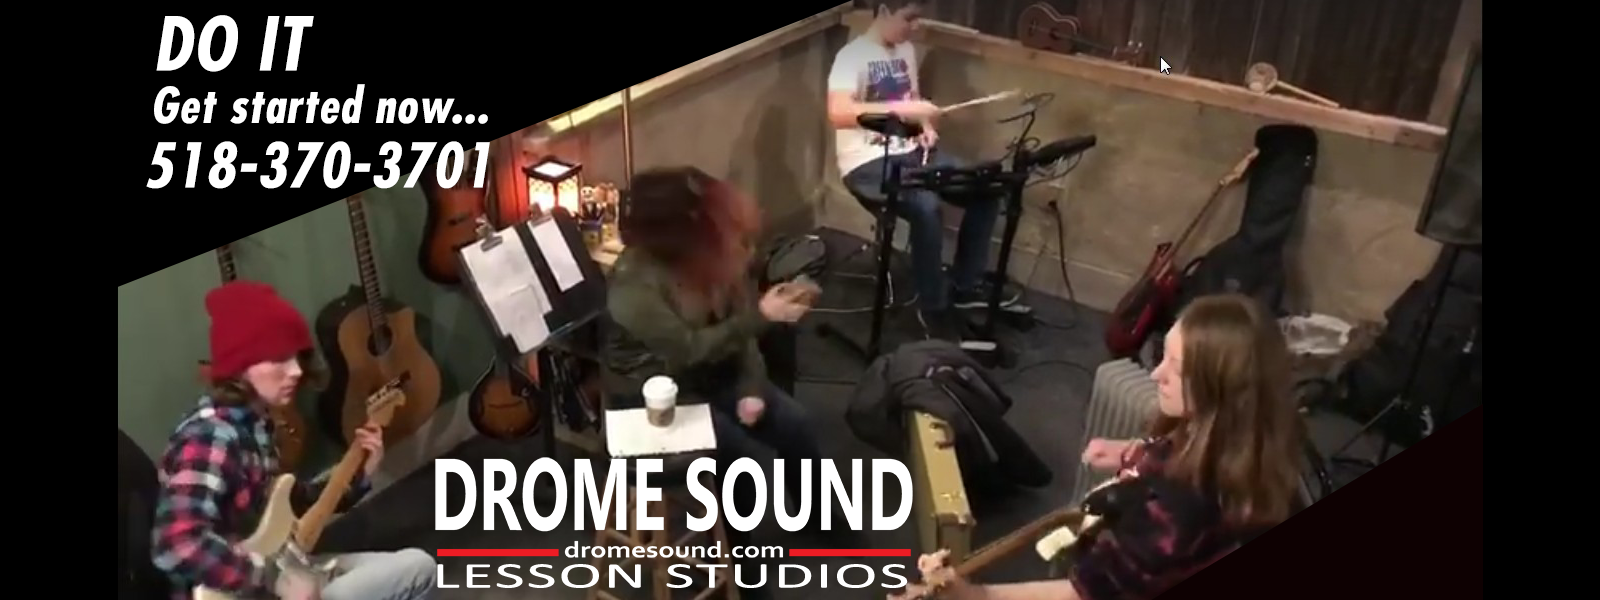 Drome Sound is an independent, full line music store, lesson studio